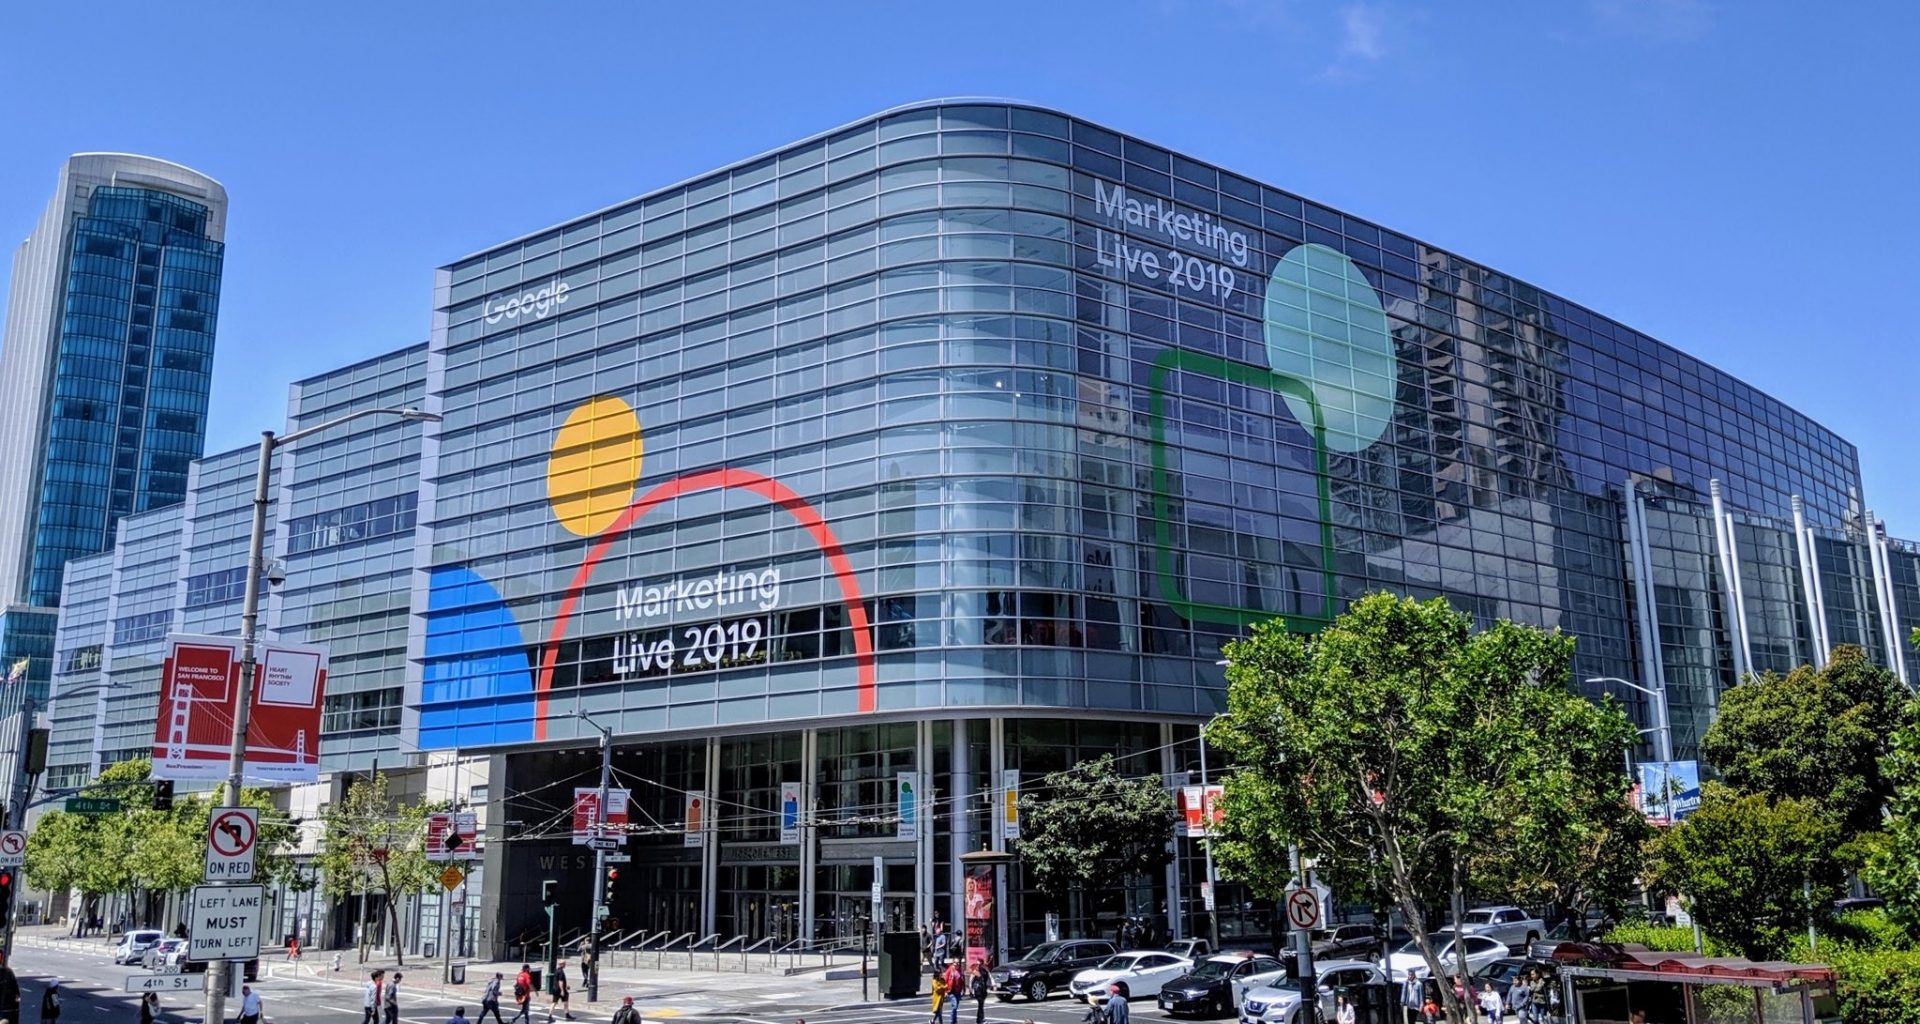 The Google office in San Francisco promoting Google Marketing Live 2019